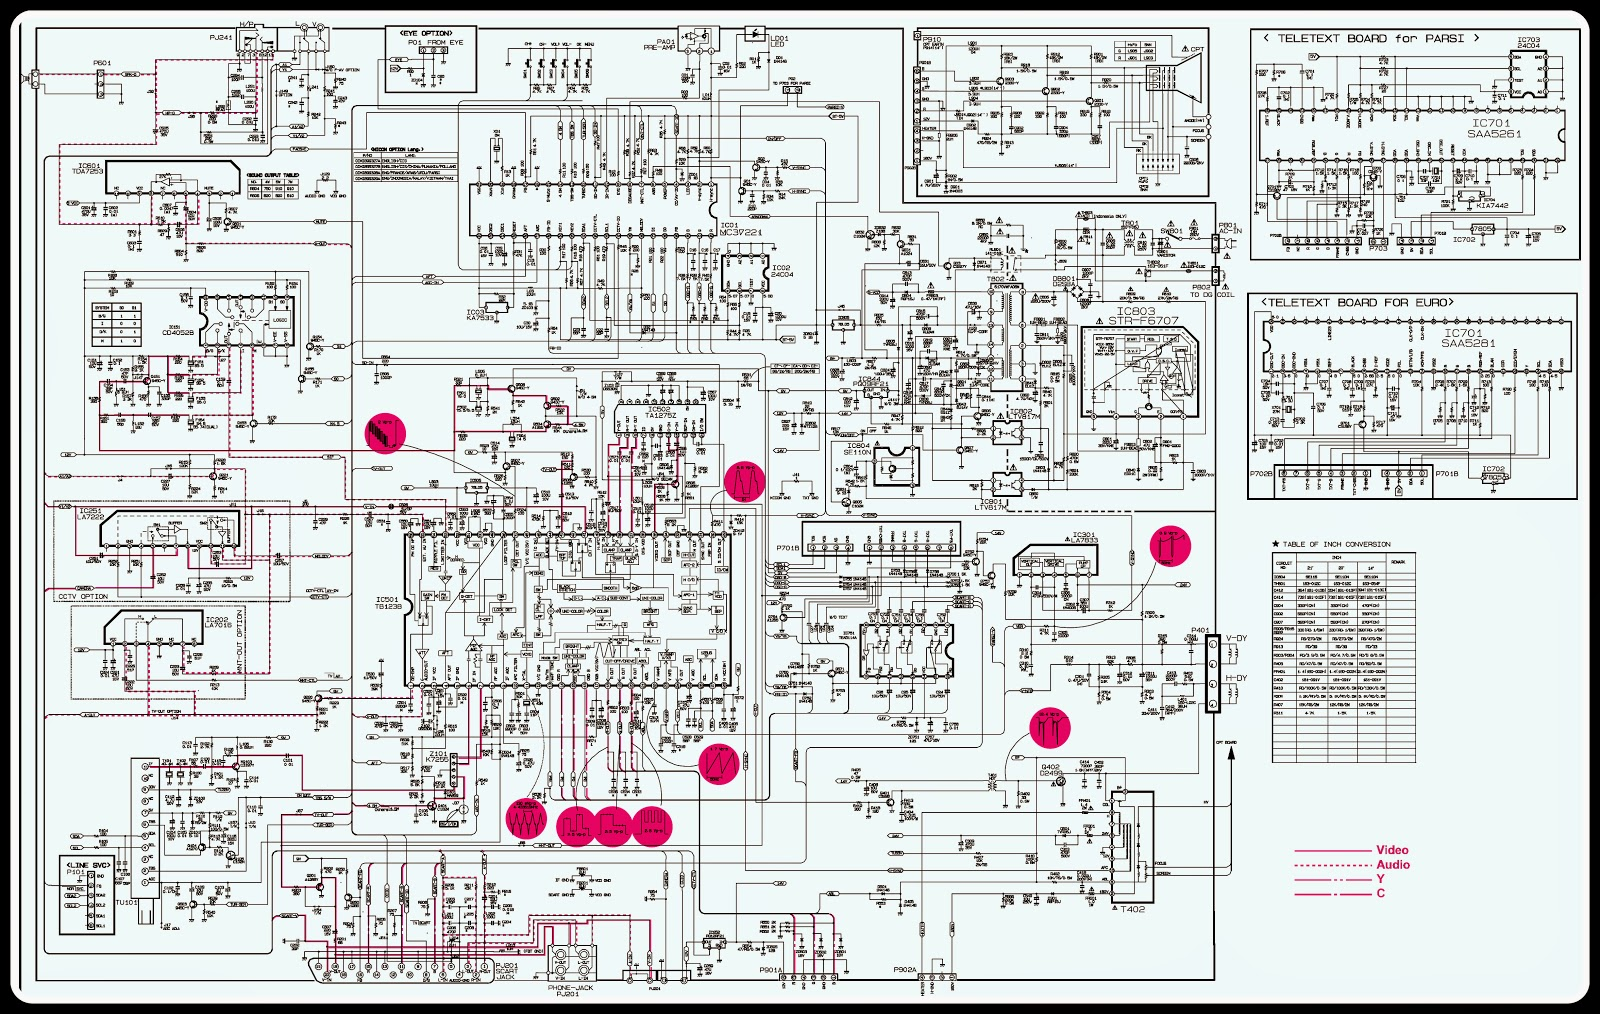 small resolution of panasonic tv hookup diagram wiring diagram blogs charter connection diagrams tv connection diagram